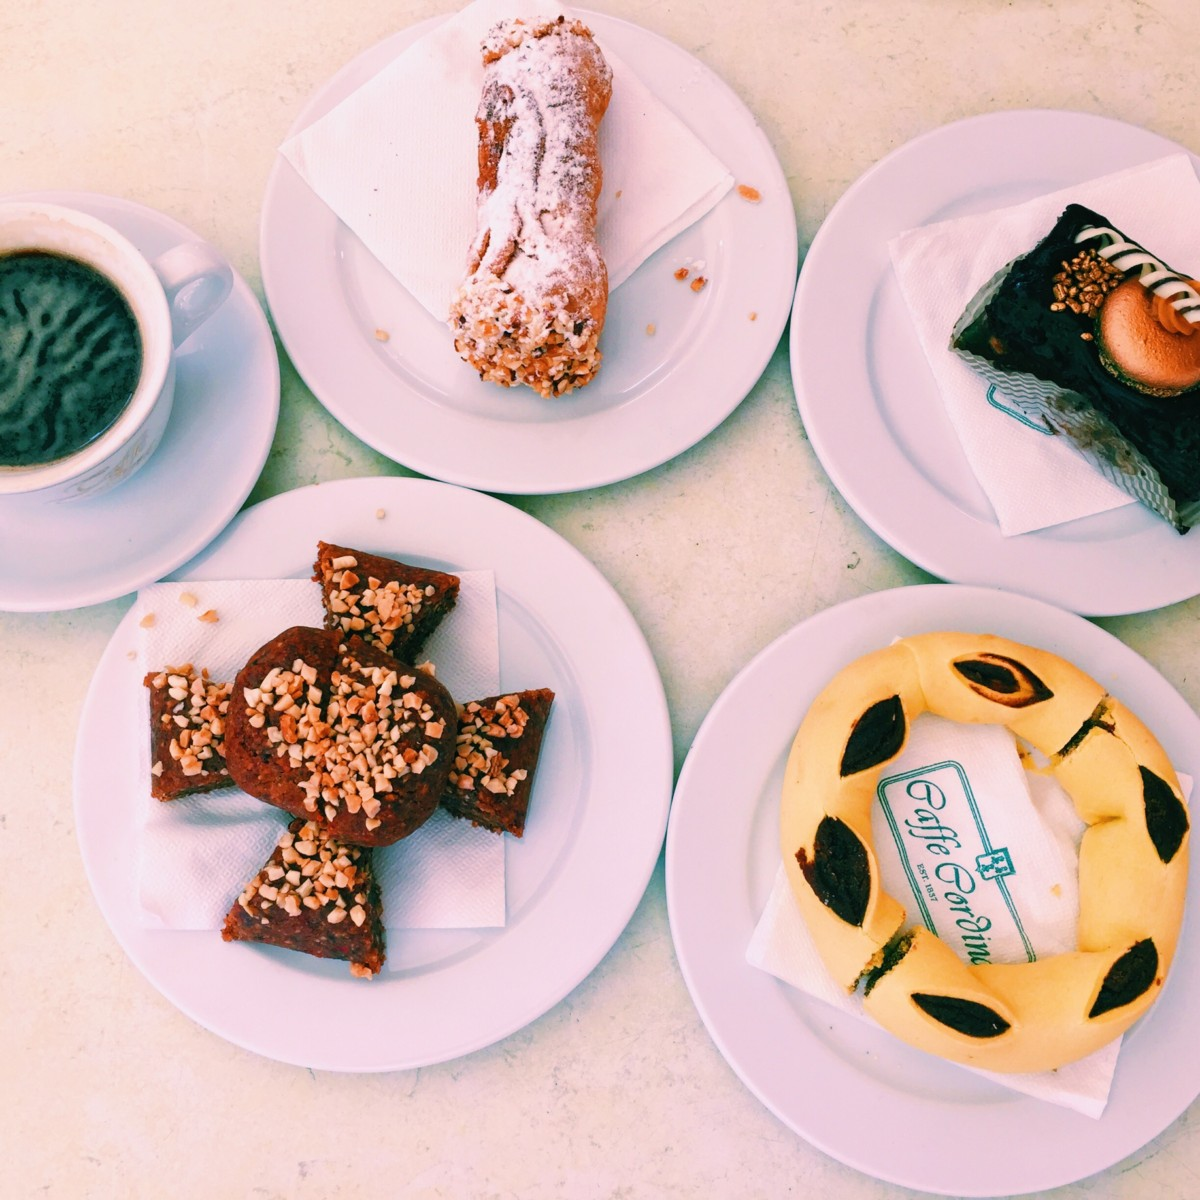 Sweet Maltese treats at Caffe Cordina, Valletta, Malta - copyright: www.globalmousetravels.com